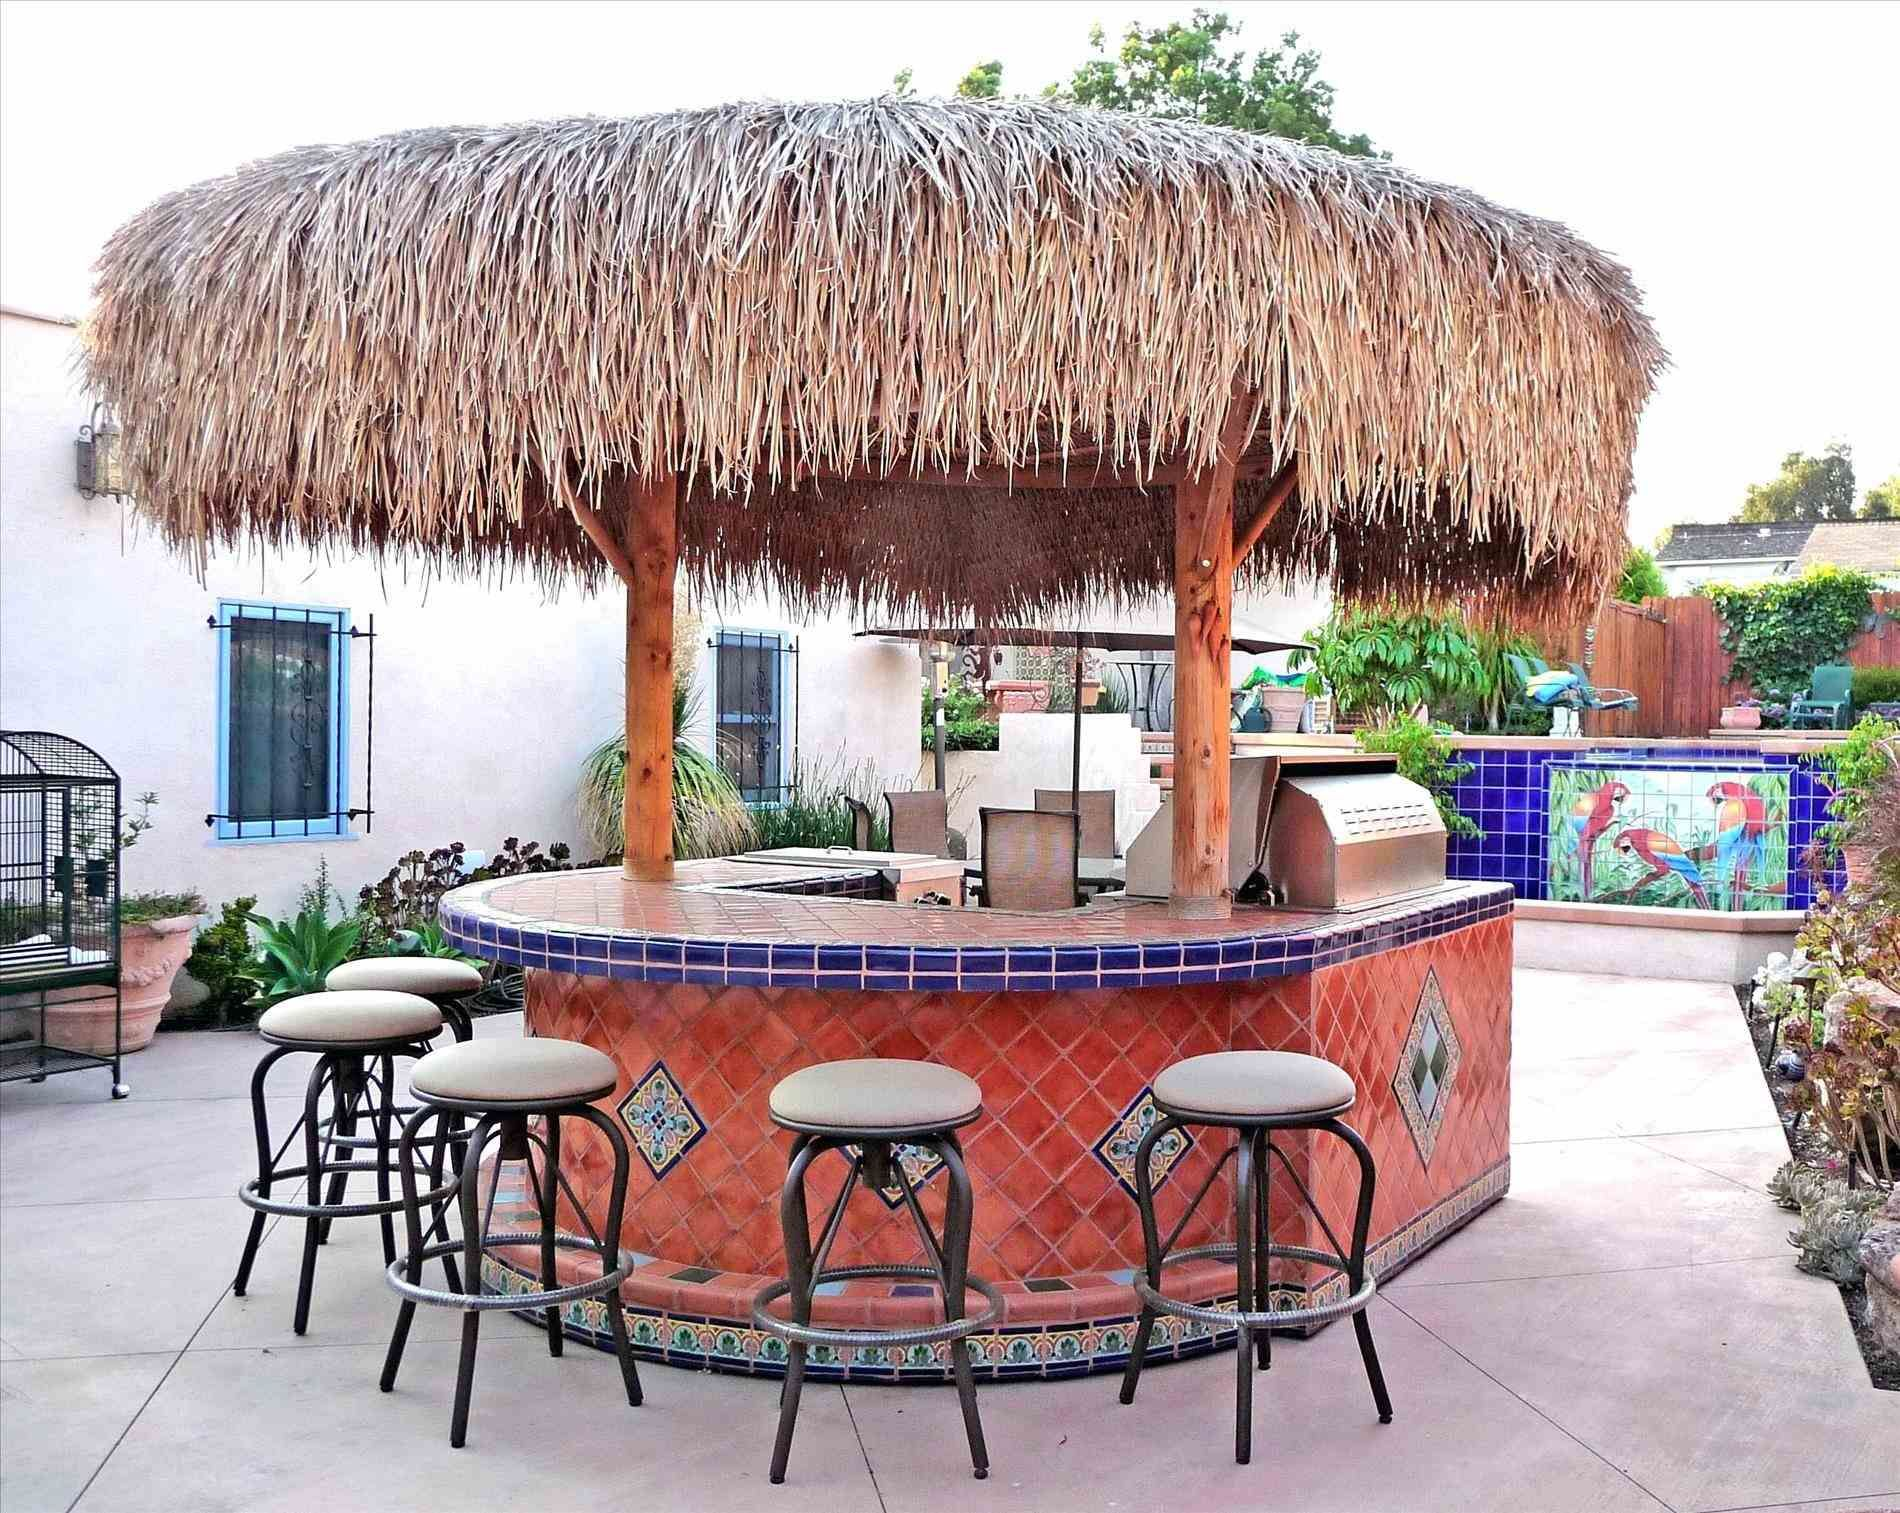 Pin by Joyce Labrinos on Exterior Remodel | Mexican patio ... on Mexican Patio Ideas  id=26919